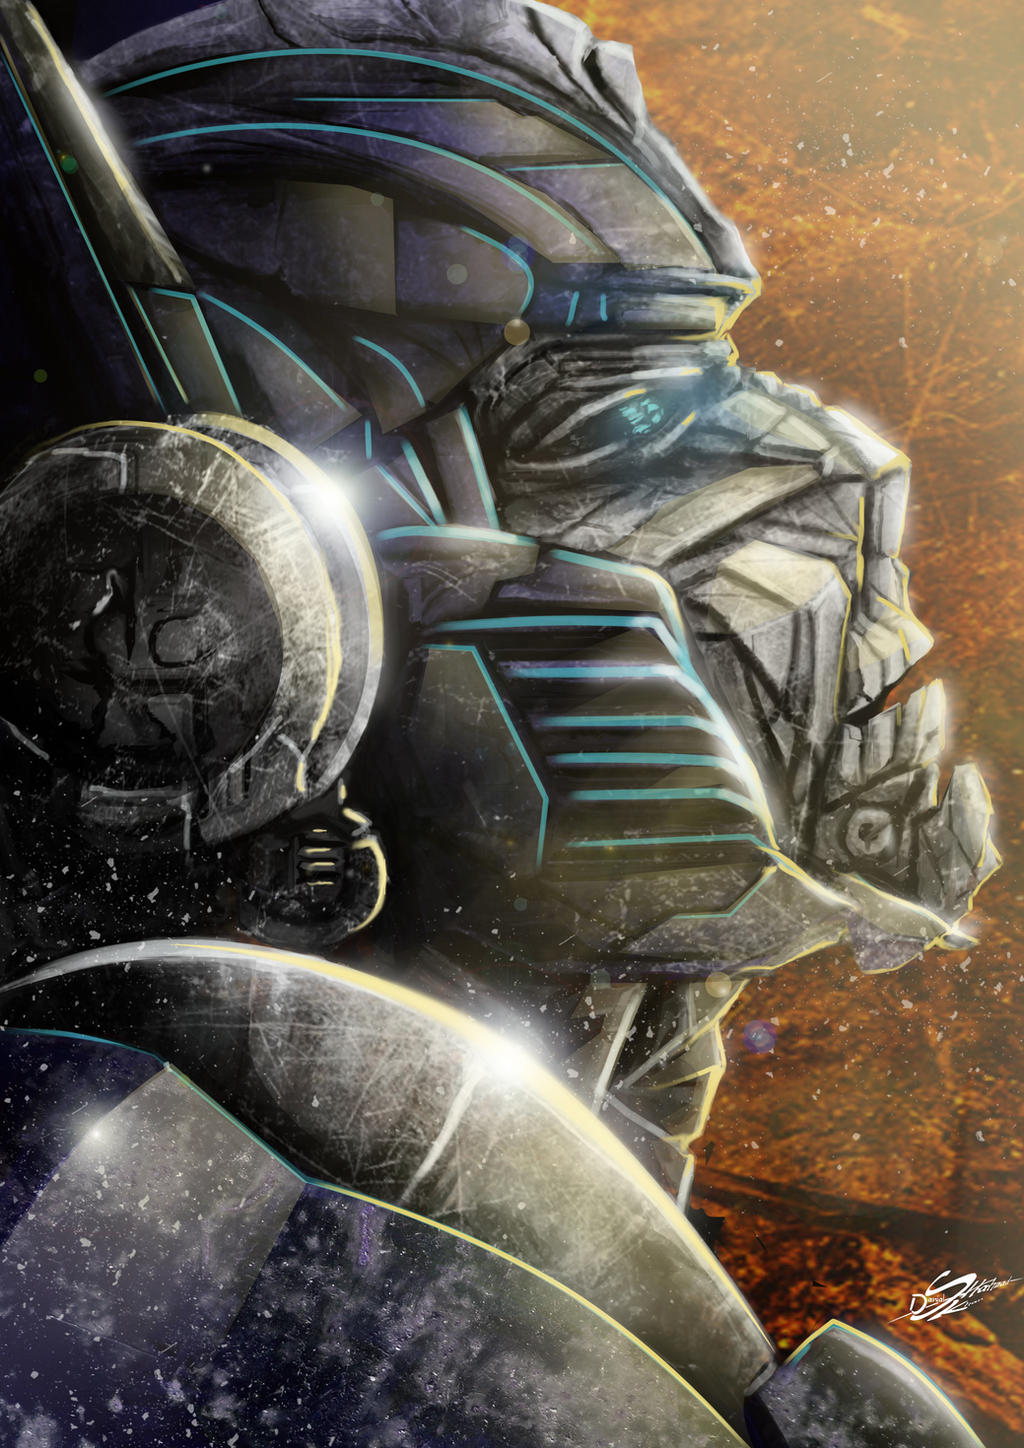 Optimus-The Last of the primes by Danthemanfantastic